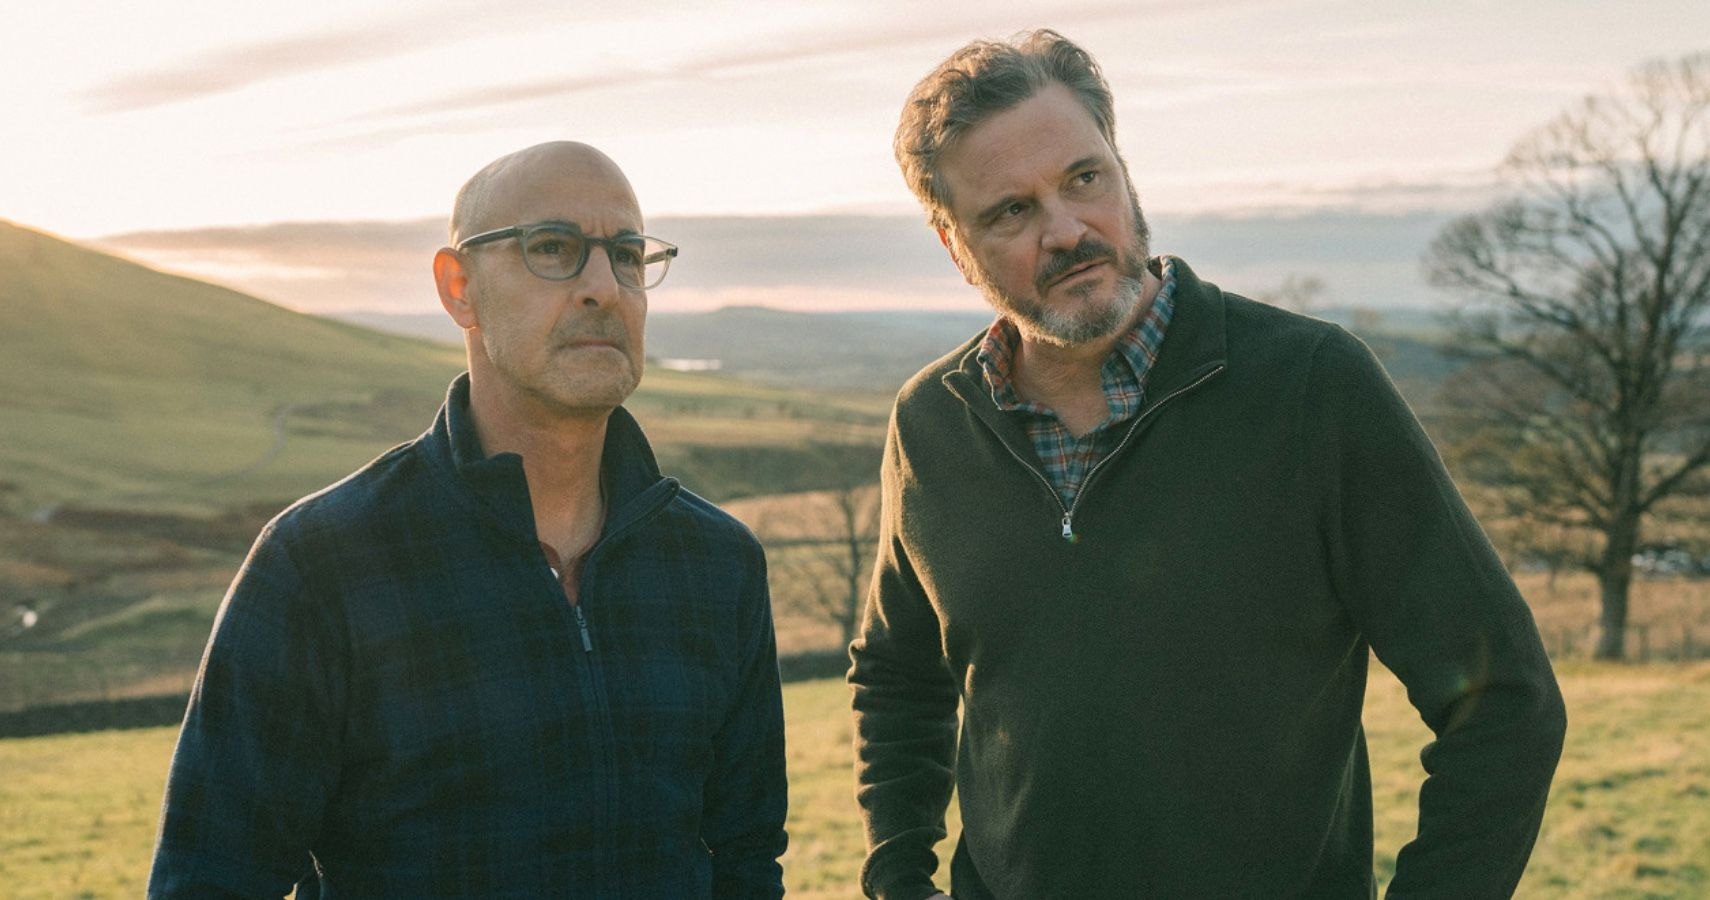 Stanley Tucci And Colin Firth Revealed They Switched Roles For Queer Drama 'Supernova'